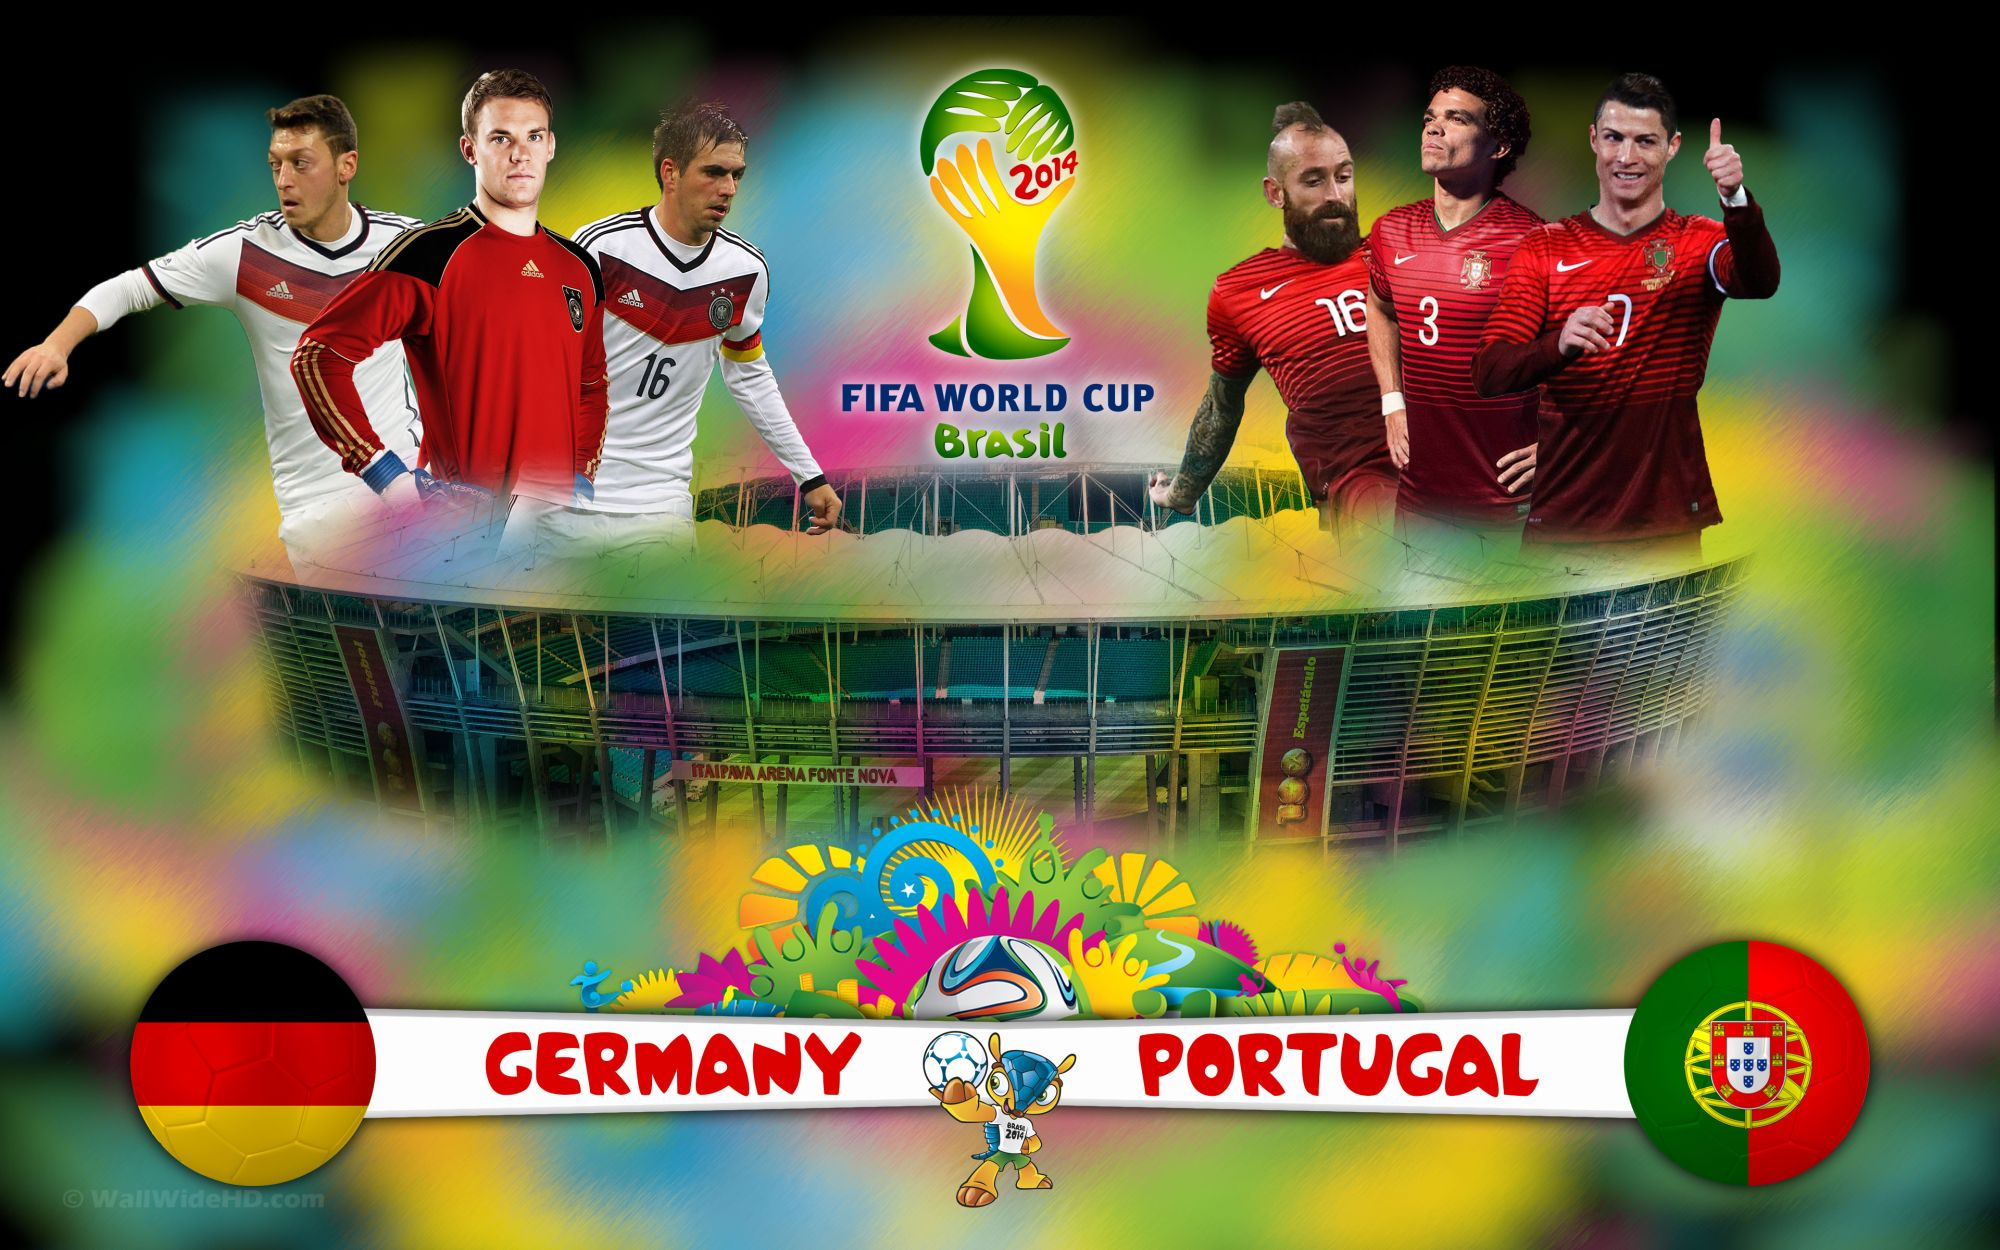 Germany-vs-Portugal-2014-World-Cup-Group-G-Match